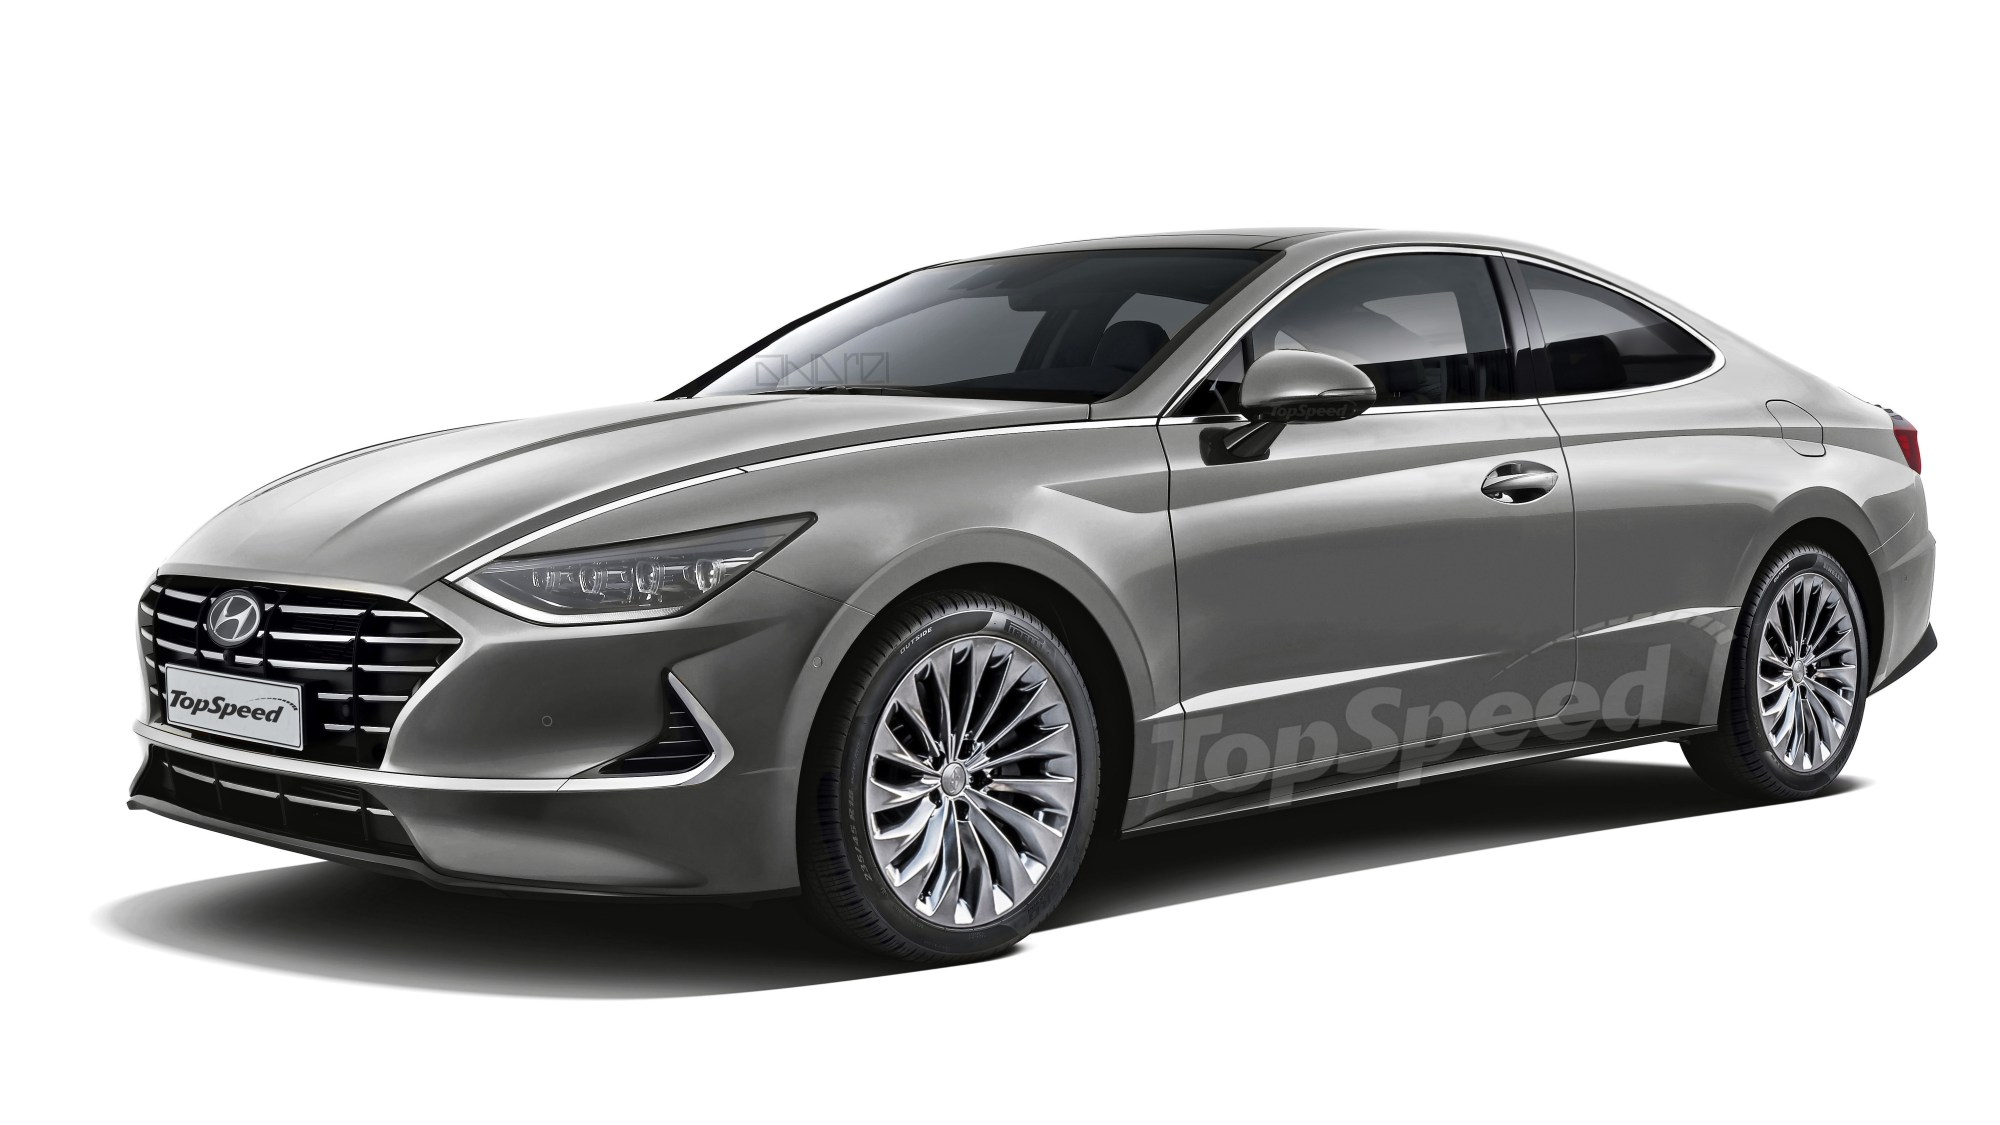 hight resolution of hyundai two door car